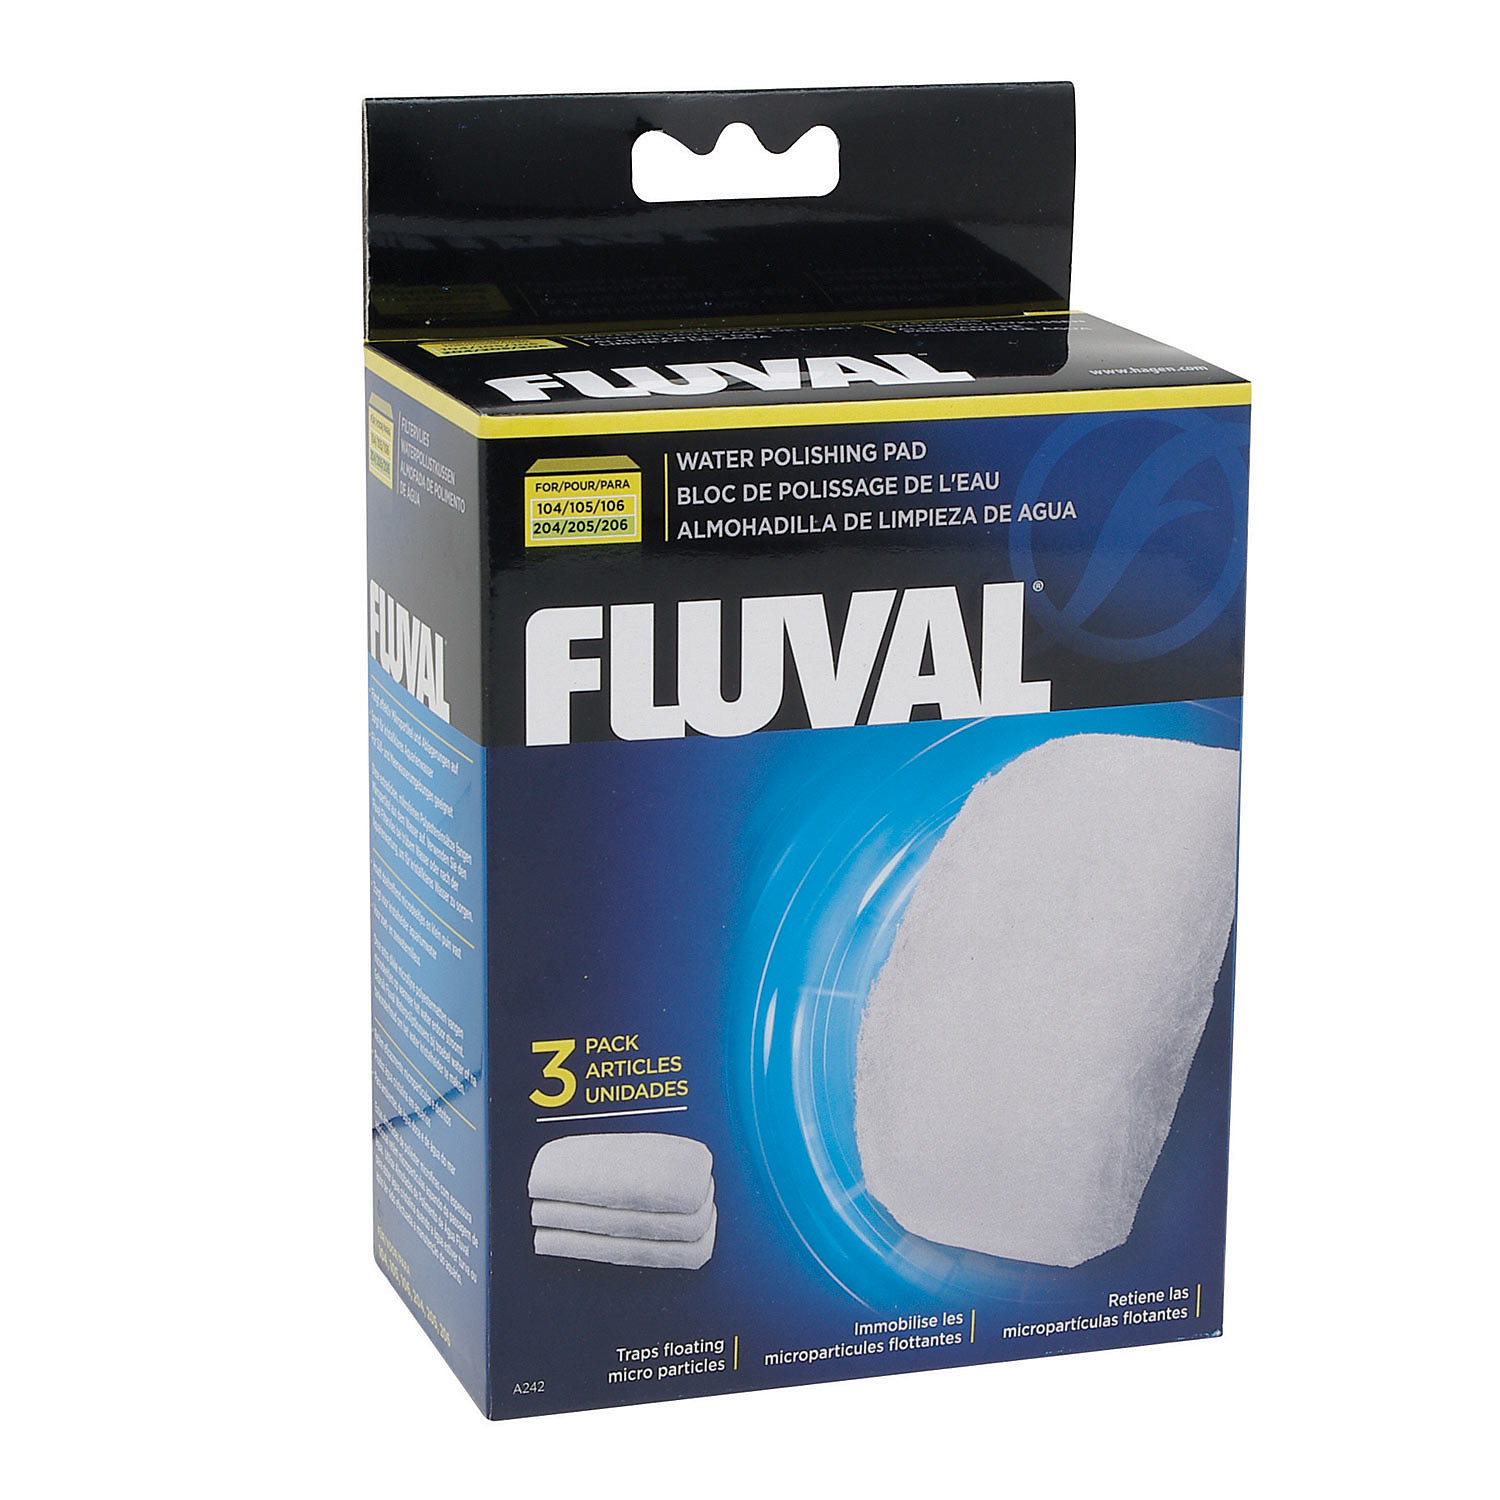 Fluval filter accessories upc barcode for Petco fish filters